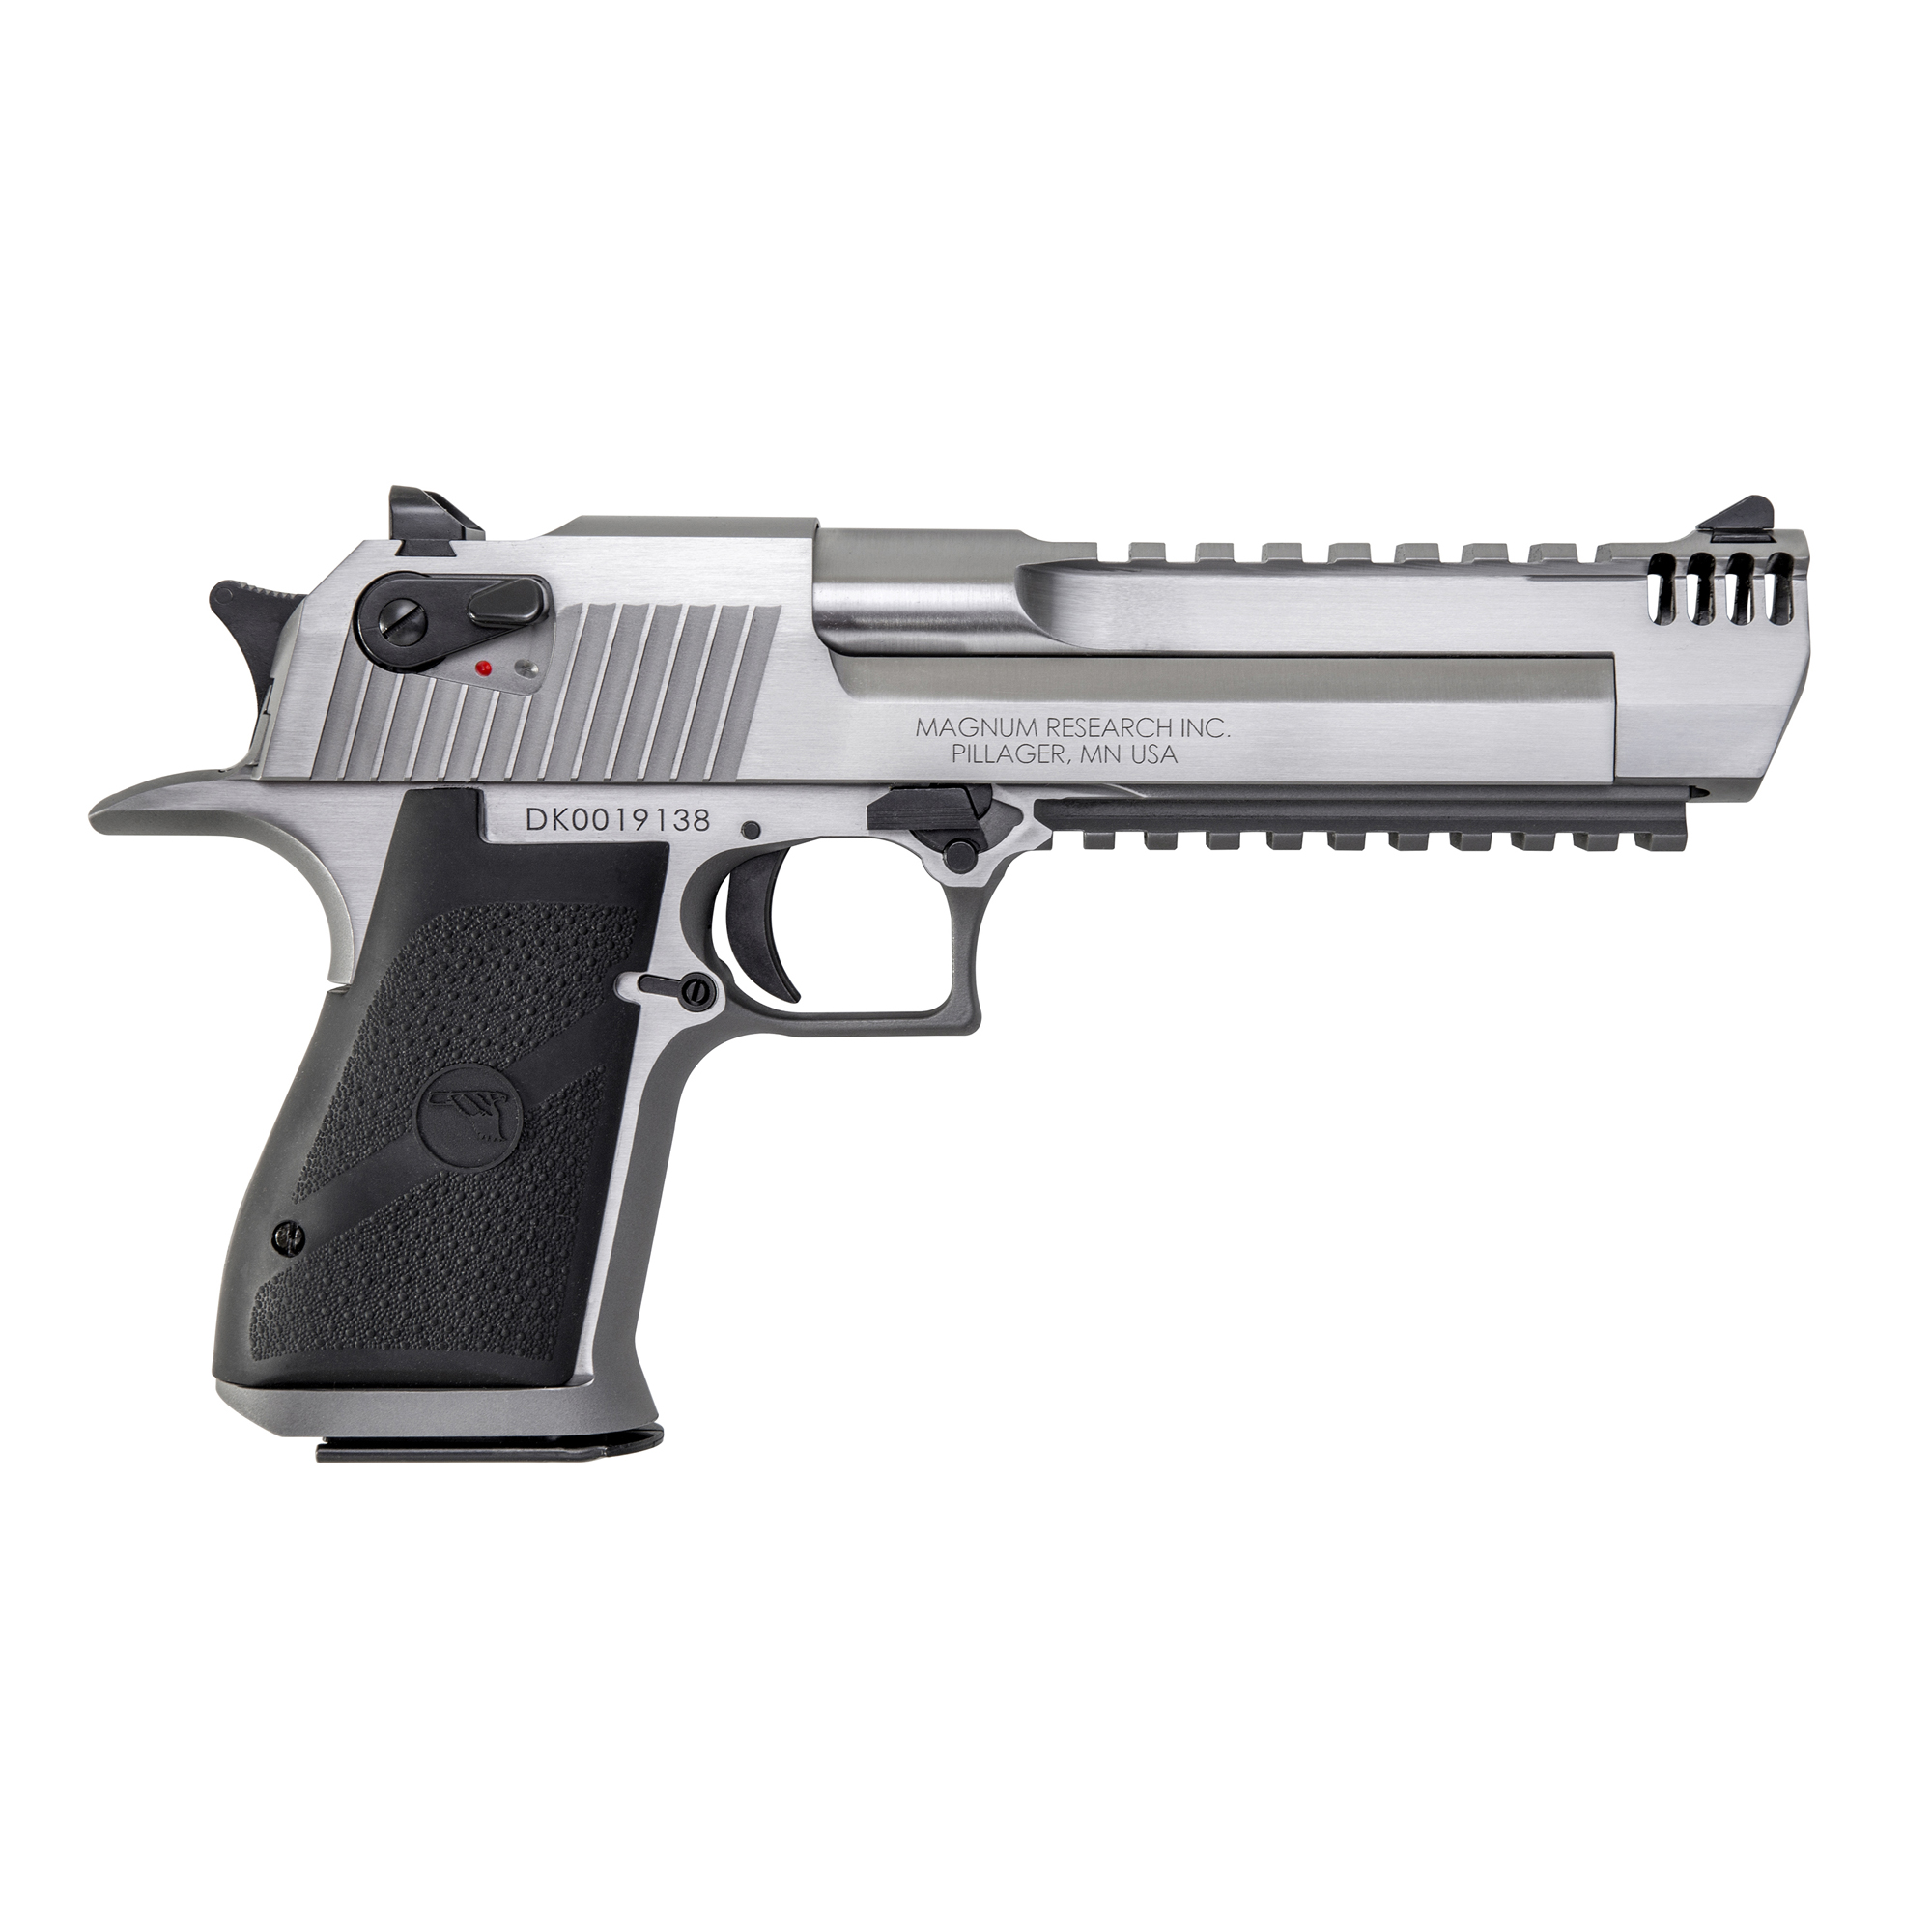 """This Magnum Research Mark XIX Desert Eagle .44 Magnum is constructed of an all stainless steel frame"""" slide"""" barrel and rail"""" and is accented with attractive black appointments. It has a 6-inch barrel and an integral muzzle brake. With the new integral muzzle brake"""" it offers significant recoil reduction"""" less muzzle flip and an attractive streamlined appearance. In addition"""" because the overall length remains the same as the standard 6"""" barrel model"""" the same holsters will fit these models. It also features a new picatinny bottom rail for accessories. Includes one 8-round magazine."""